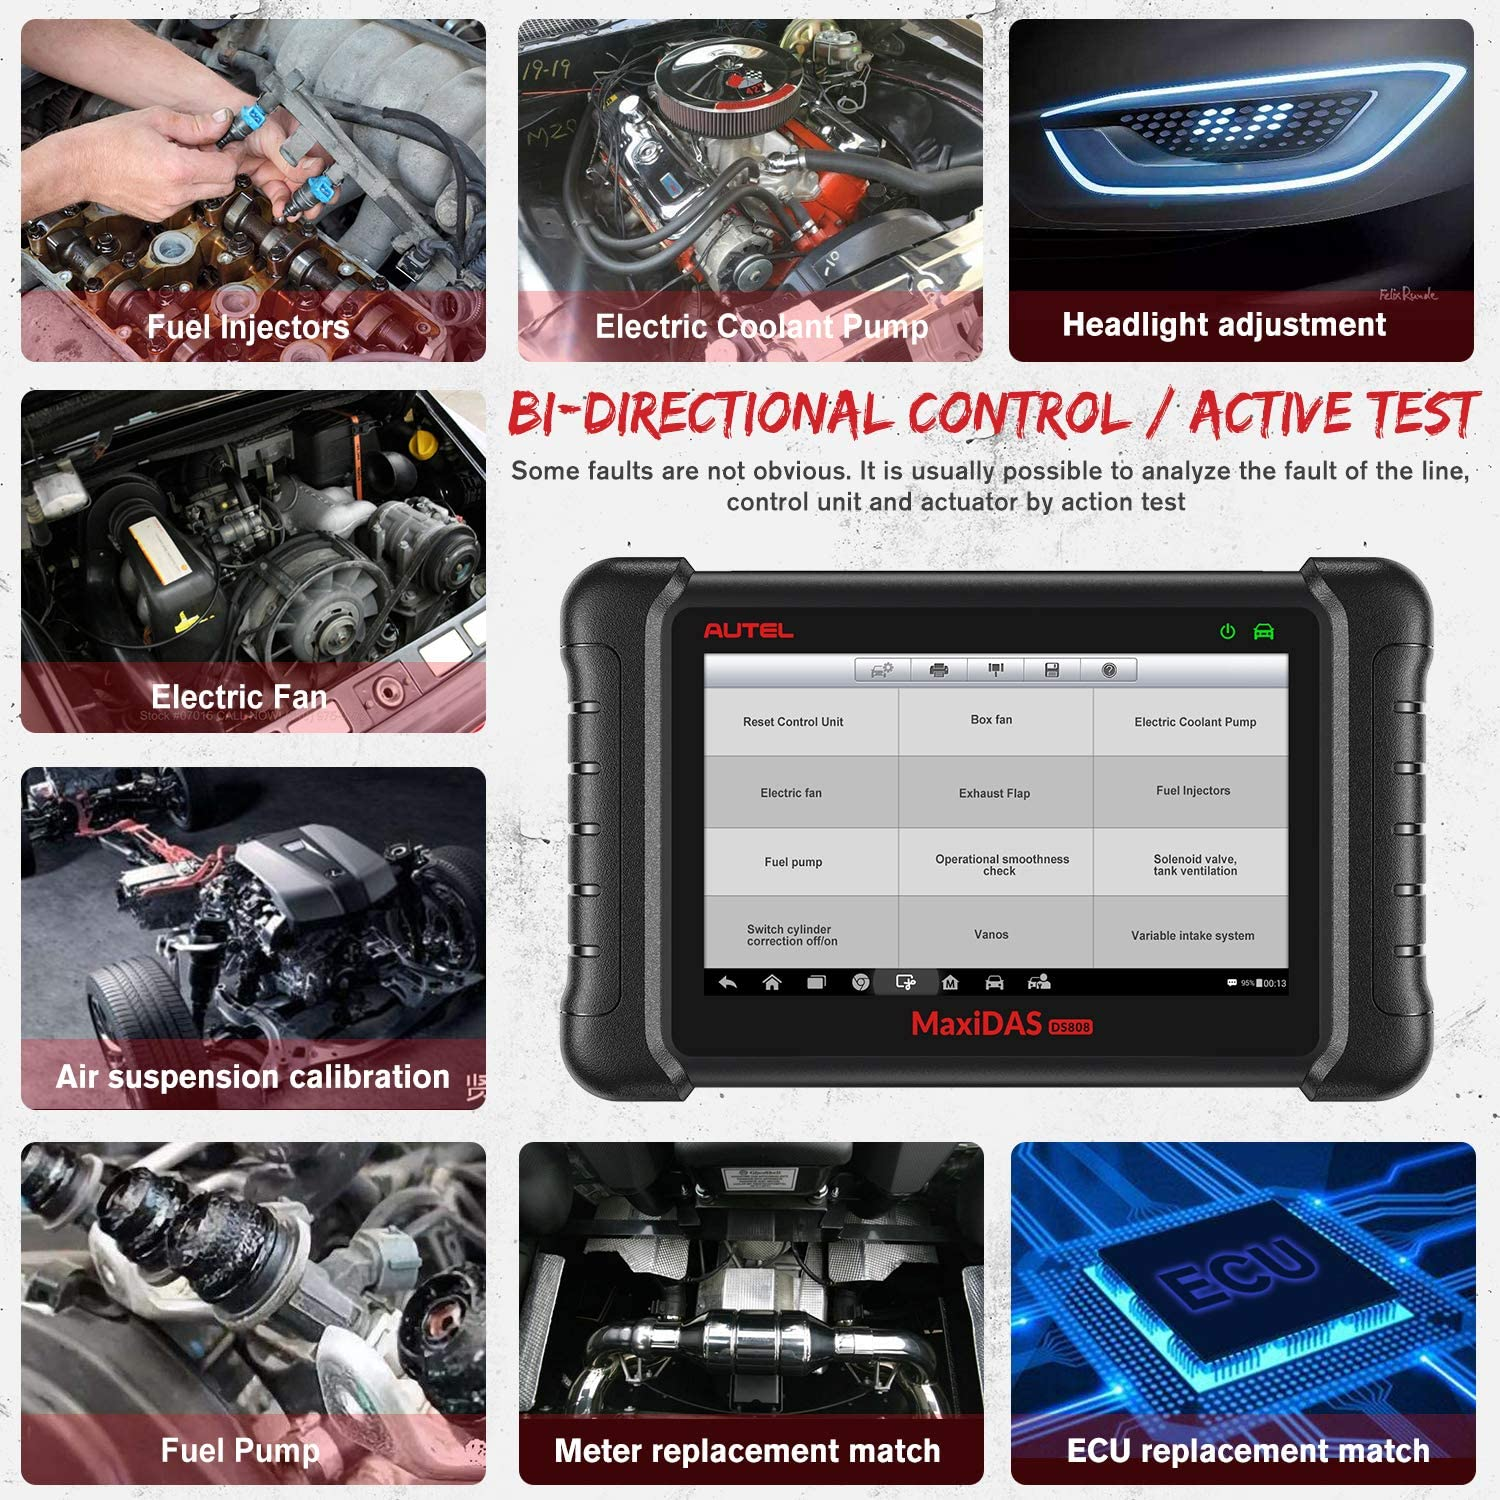 Autel MaxiDAS DS808K Full Systems OBD2 Diagnostic Tool Supports Bi-Directional Control/Active Test